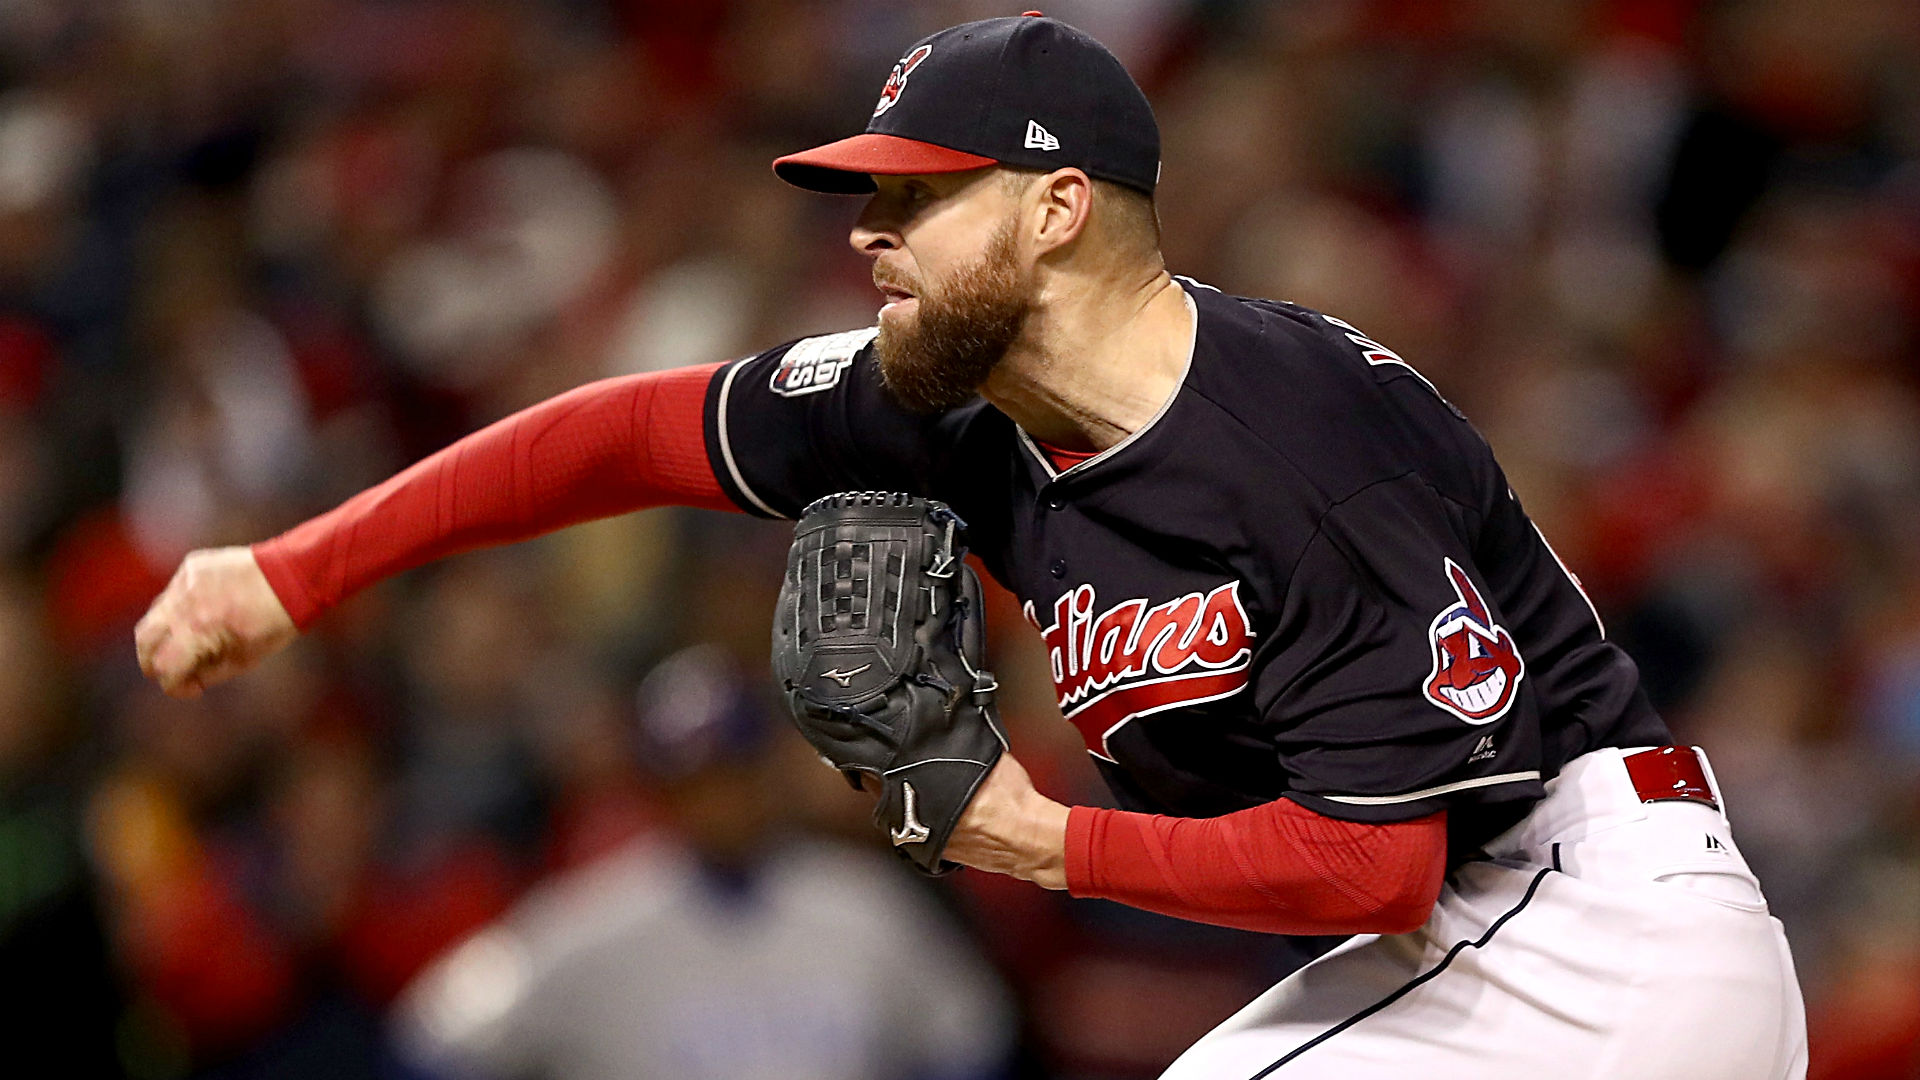 Image result for 2016 world series game 1 corey kluber